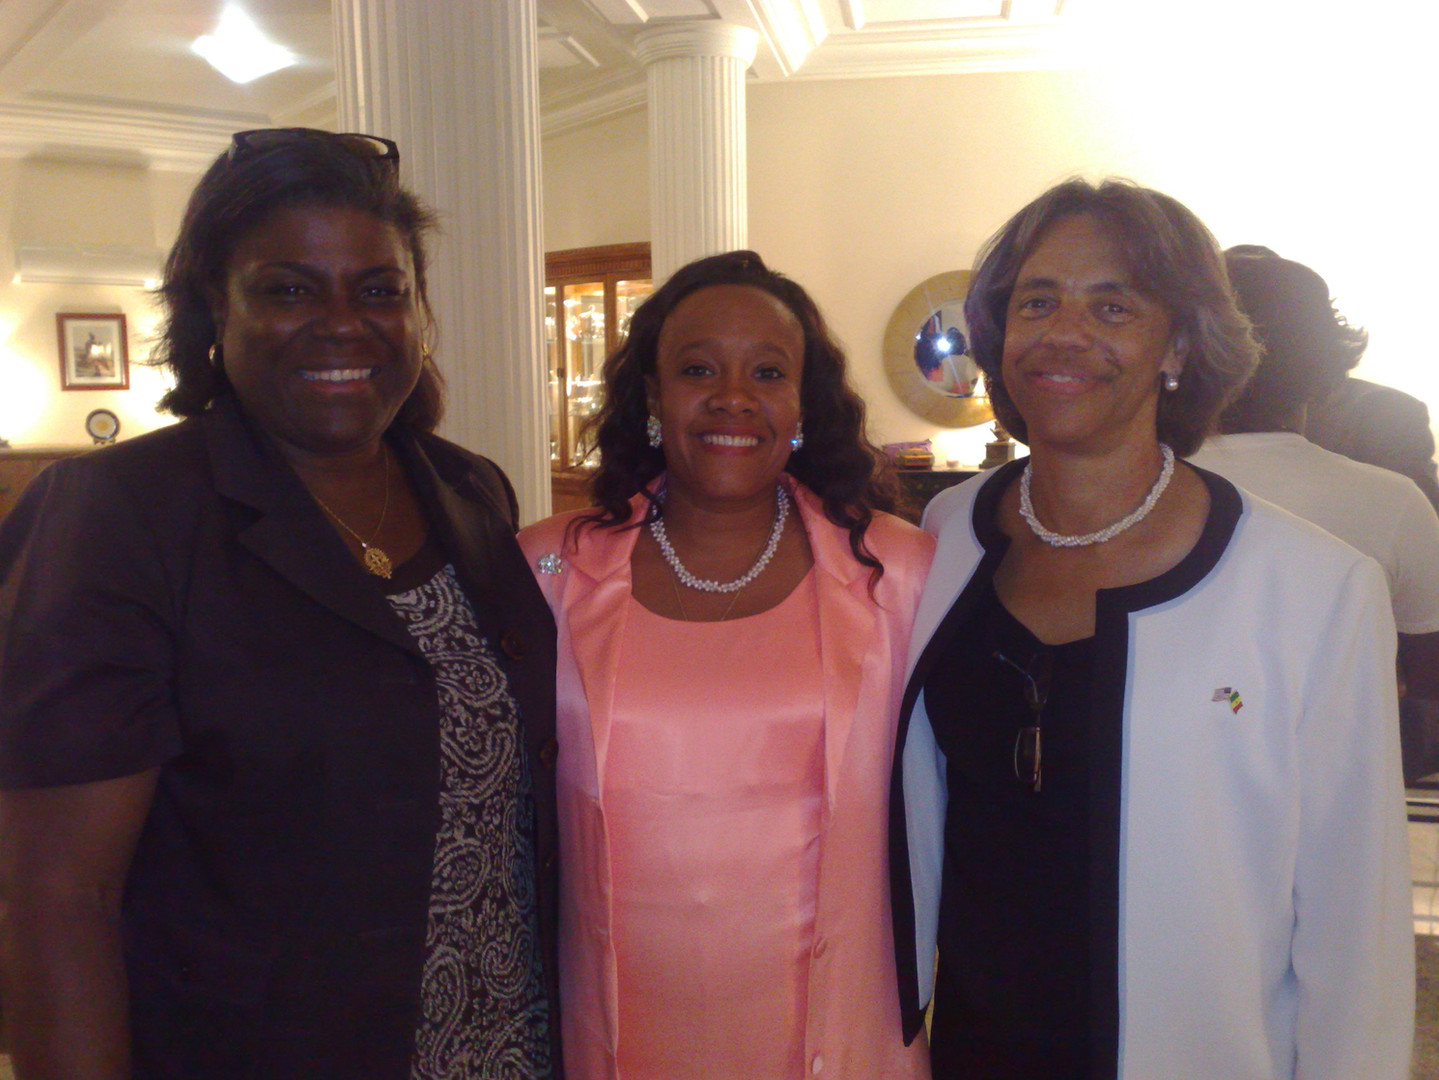 ISE Director Paullette Diaz-Reed with Former U.S. Secretary Linda Green, and Ambassador Marcia Bernicat, (Presently the Ambassador to Bangladesh)